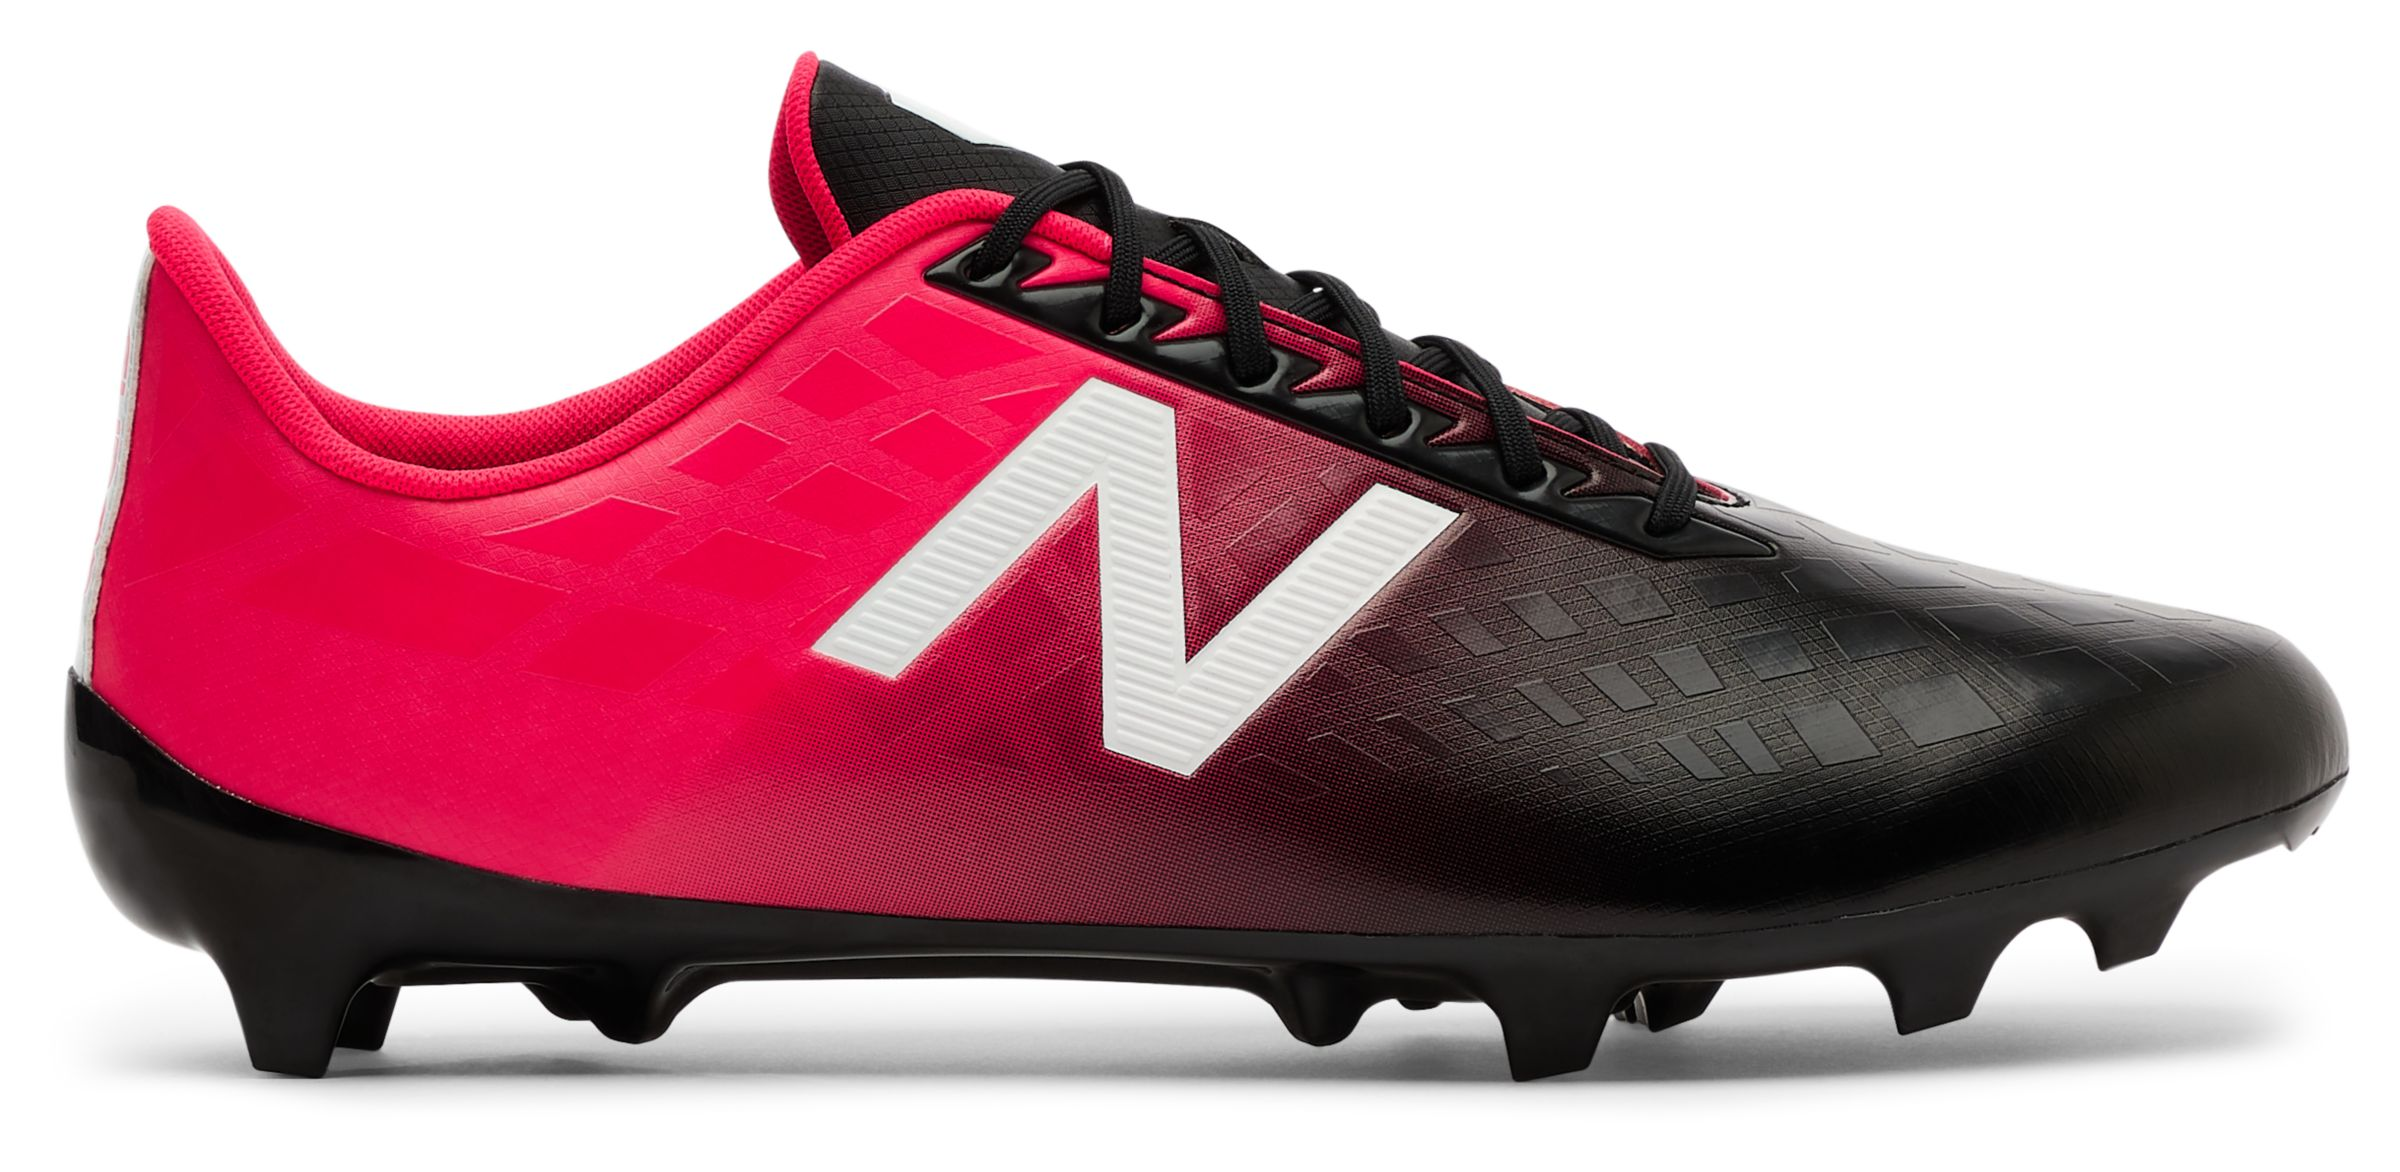 38cacea3b72d3 New Balance Men's Furon V4 Dispatch Fg Soccer Cleat Shoes Red With ...